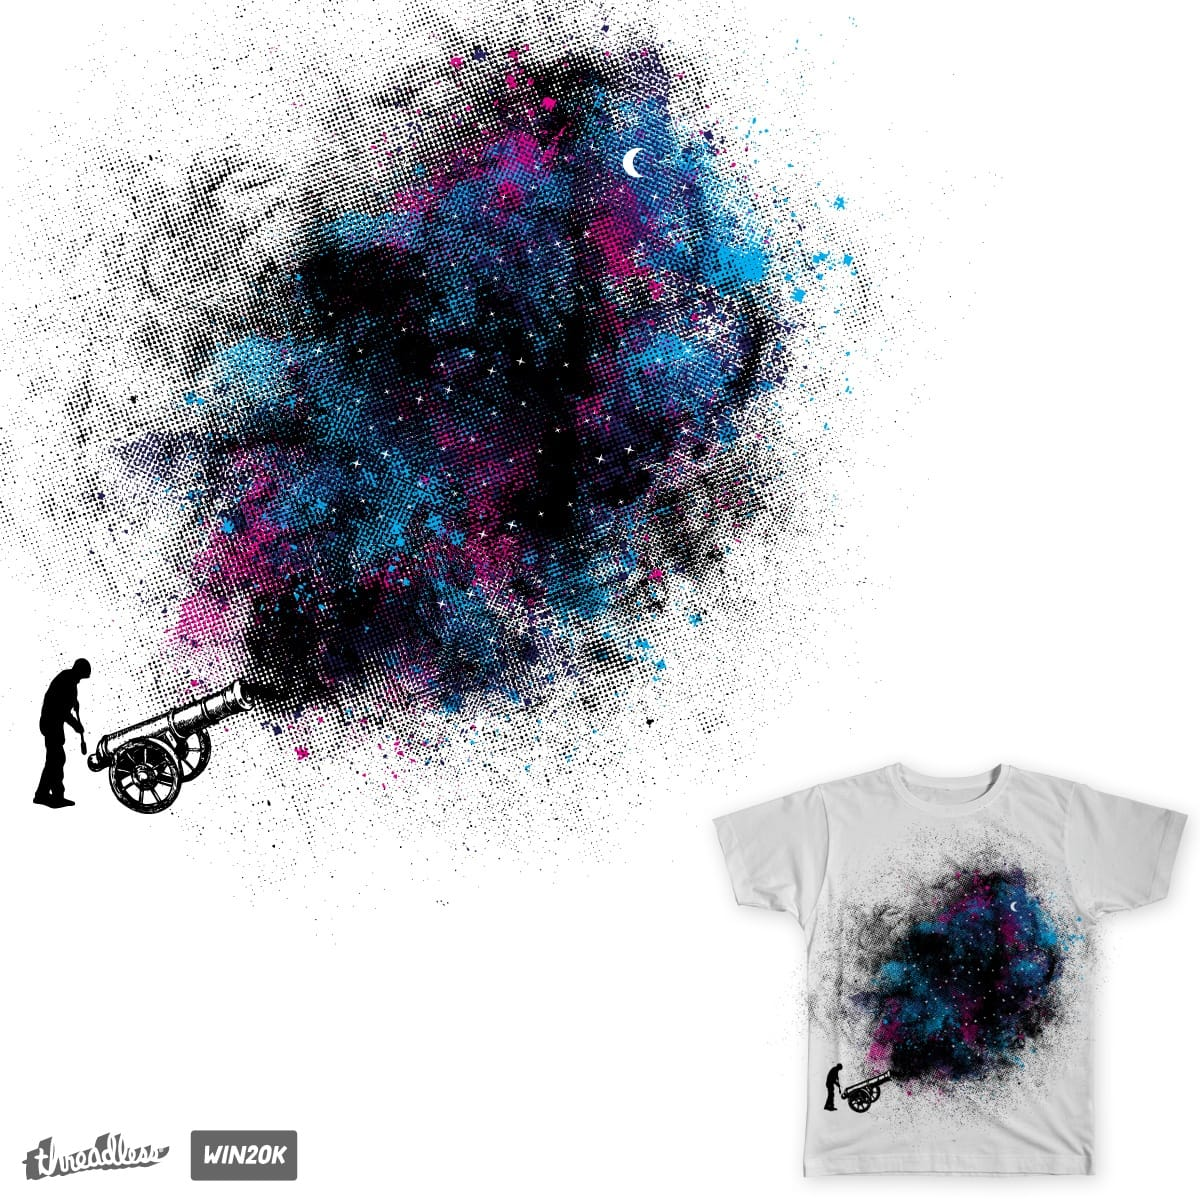 The Big Bang by daletheskater on Threadless